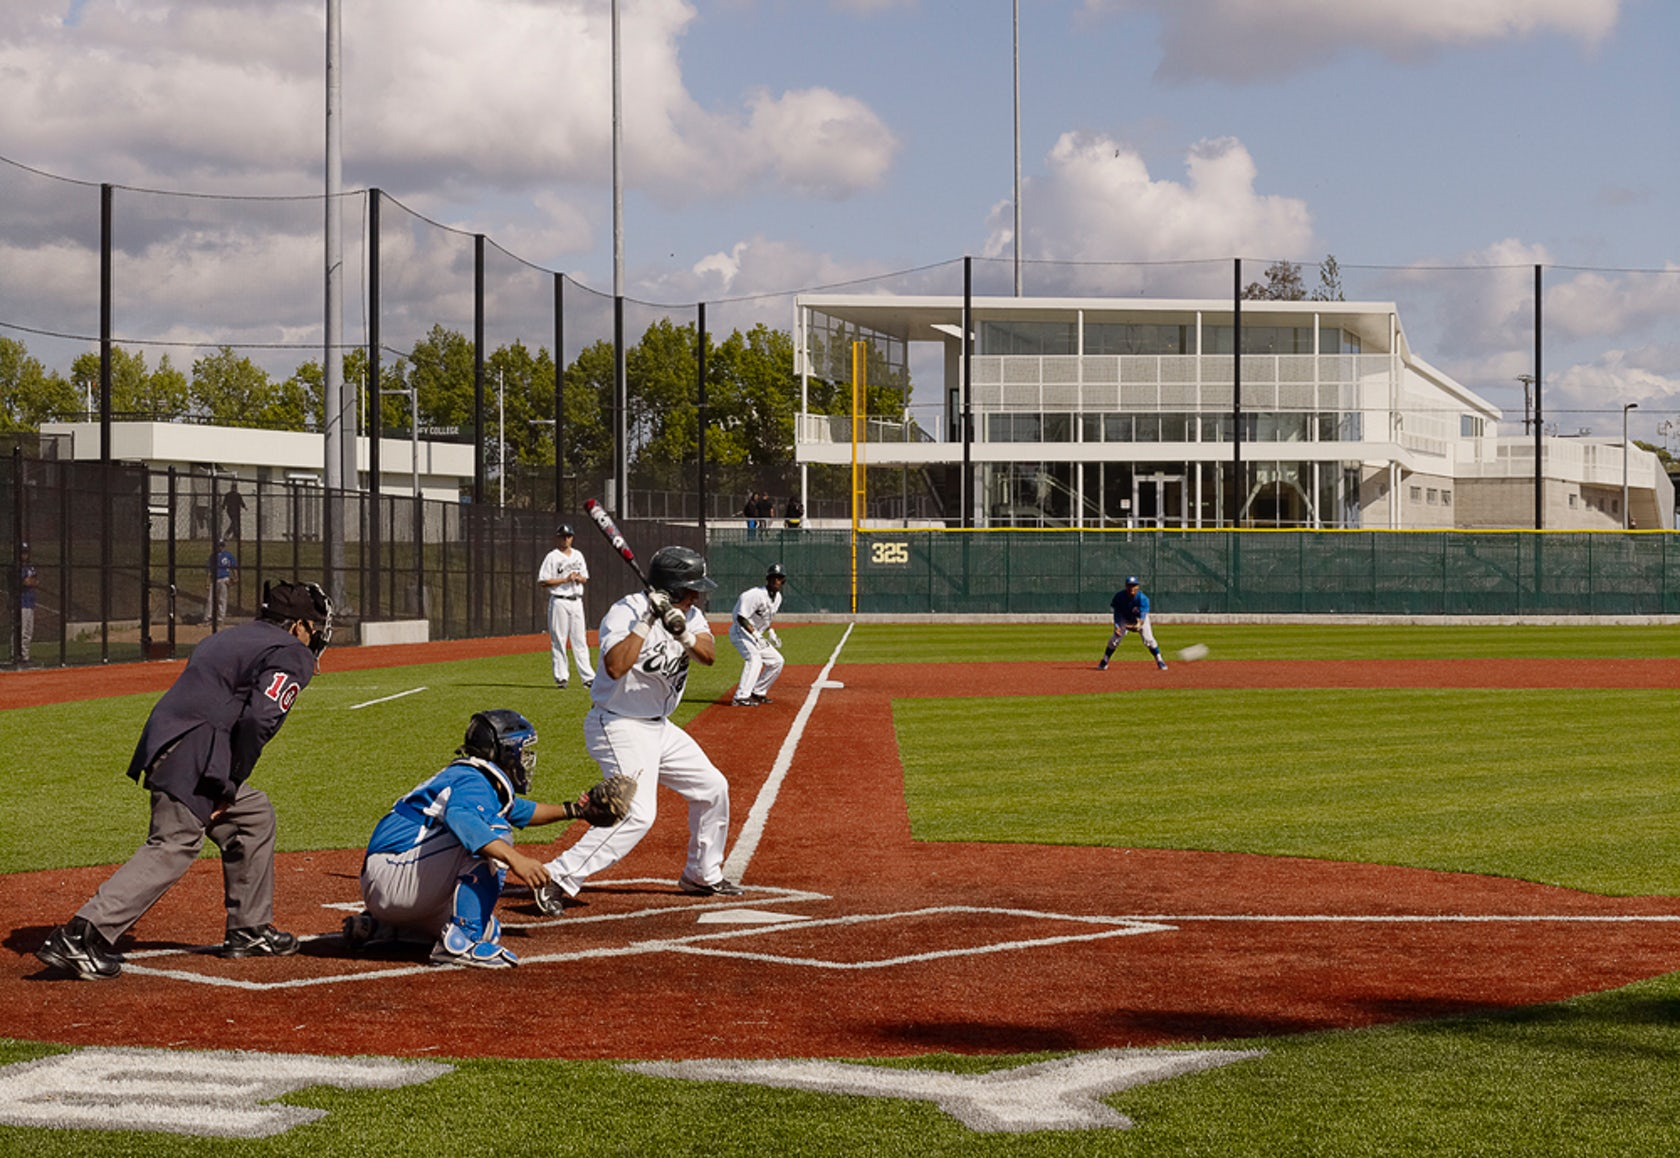 Laney college field house and fields architizer for Garden city community college baseball